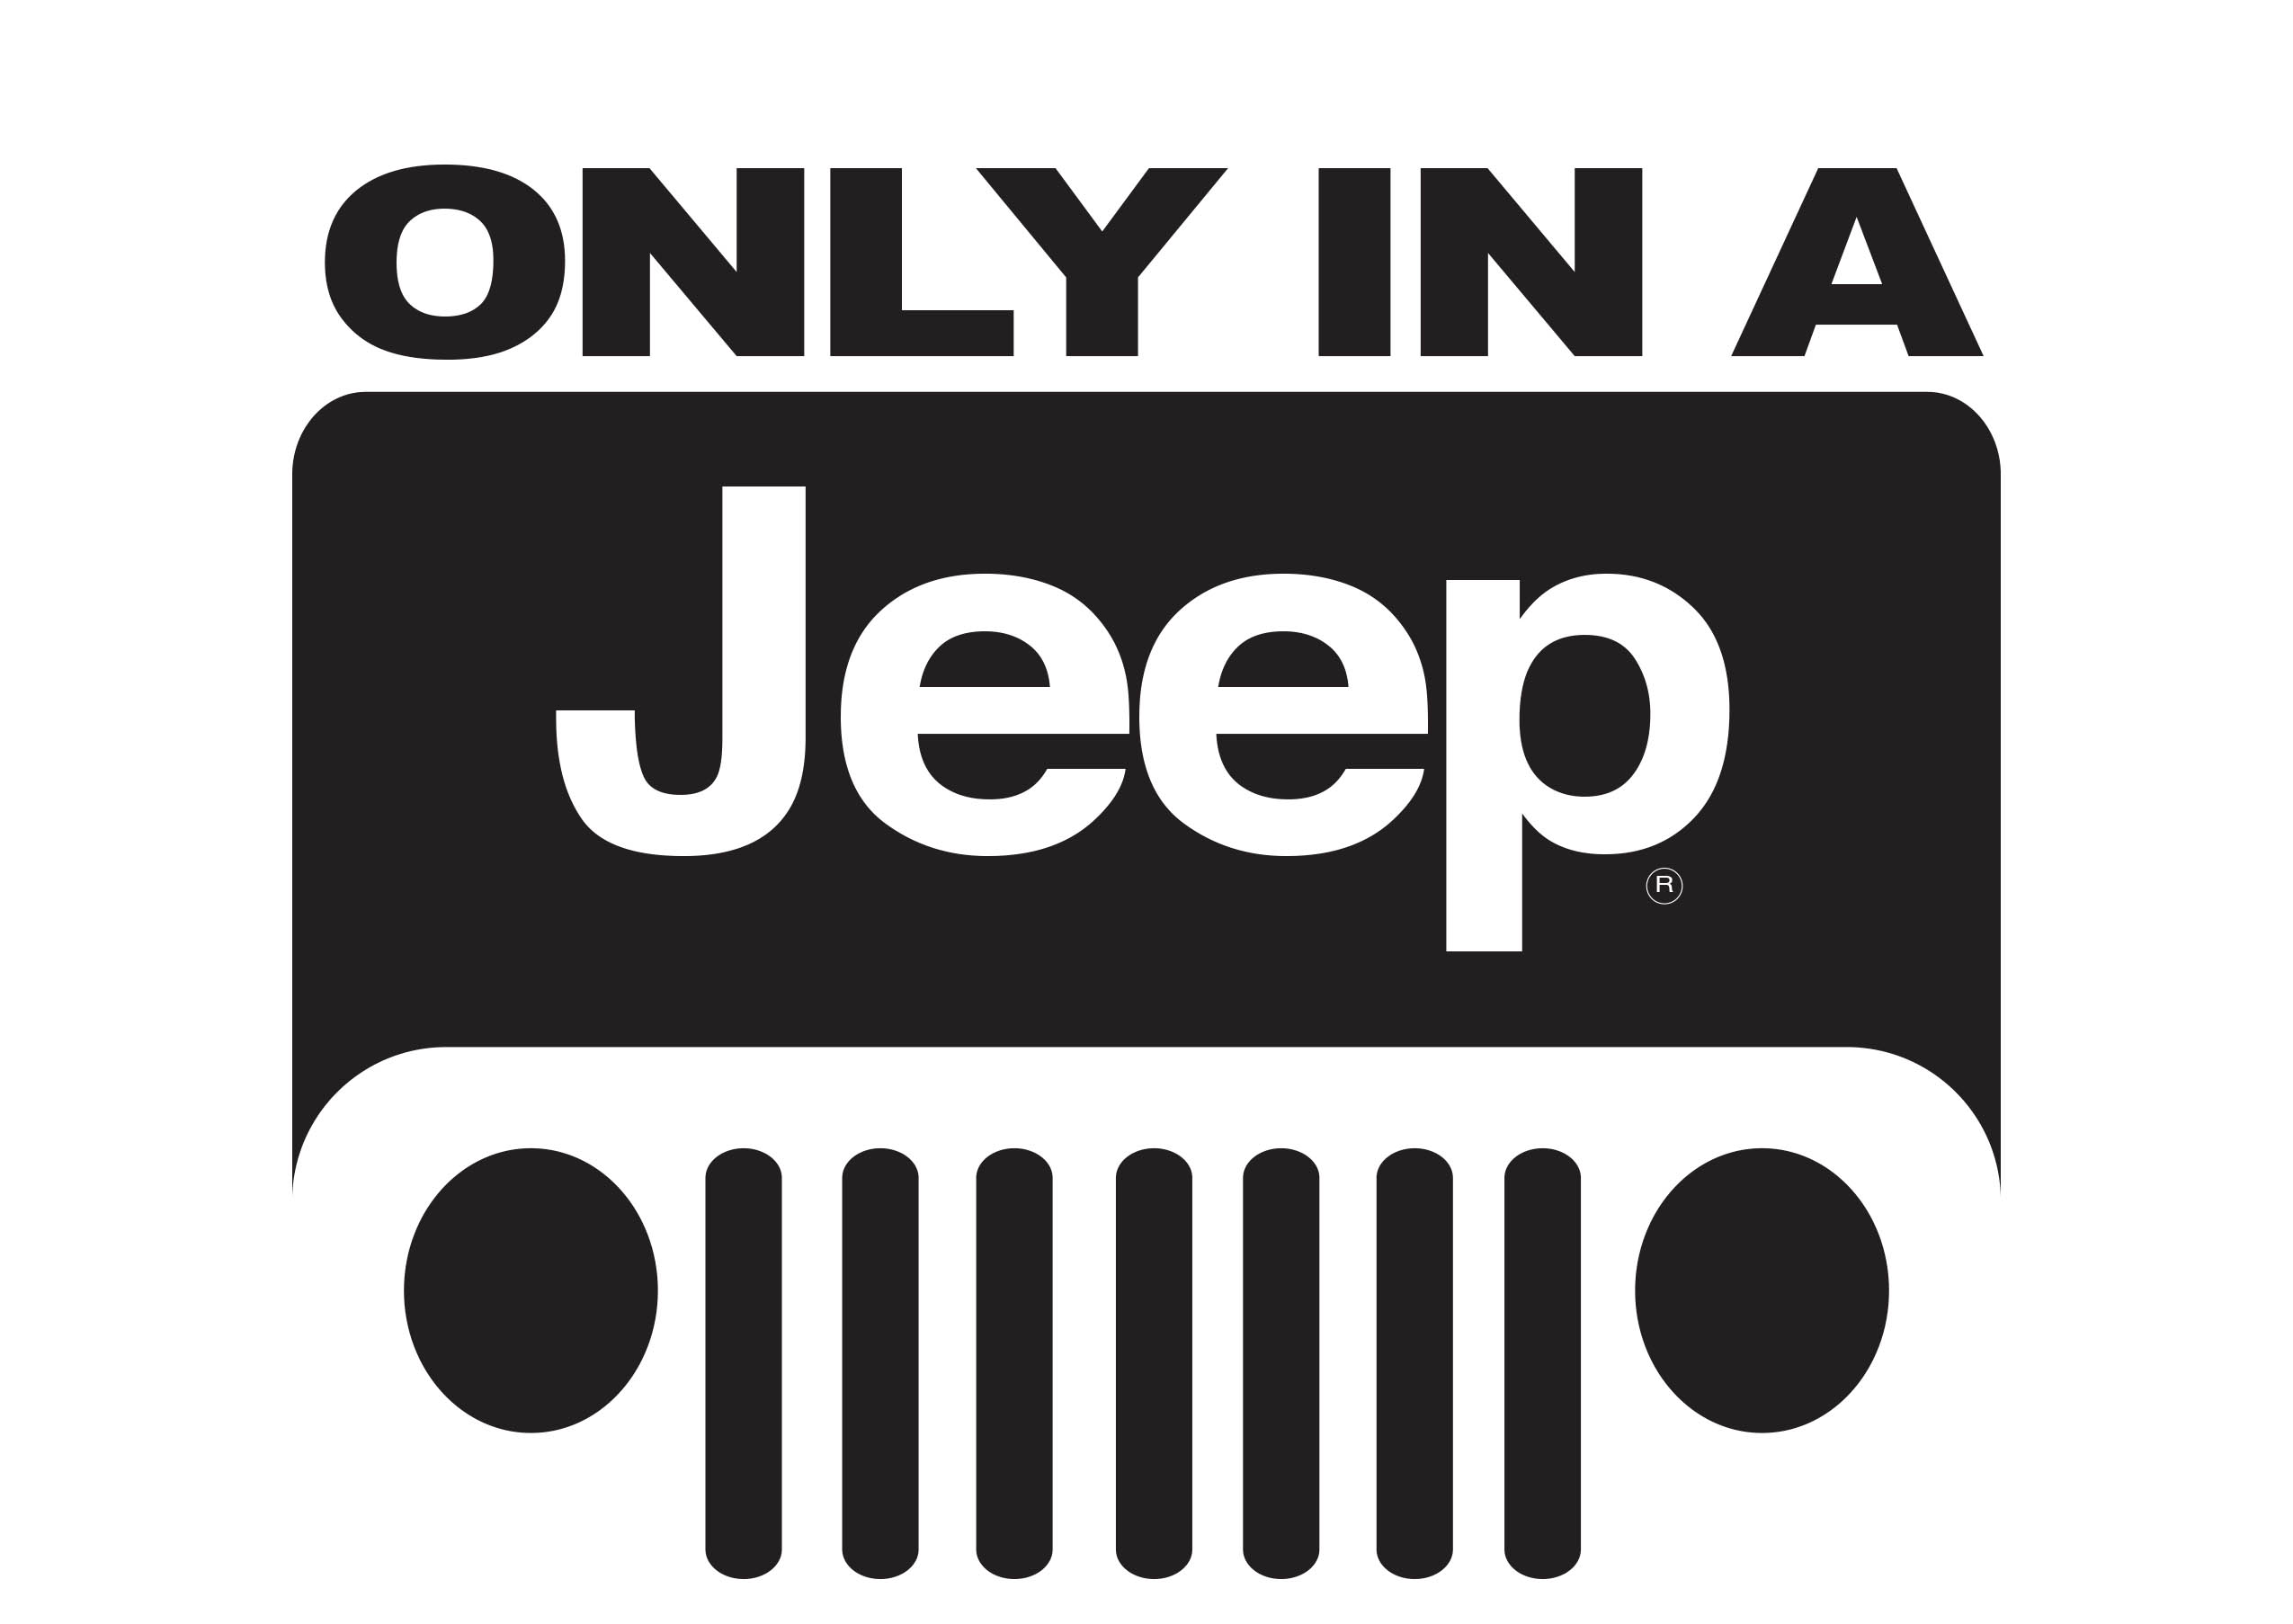 Cool Jeep Logo Wallpaper Images Pictures   Becuo 2550x1806